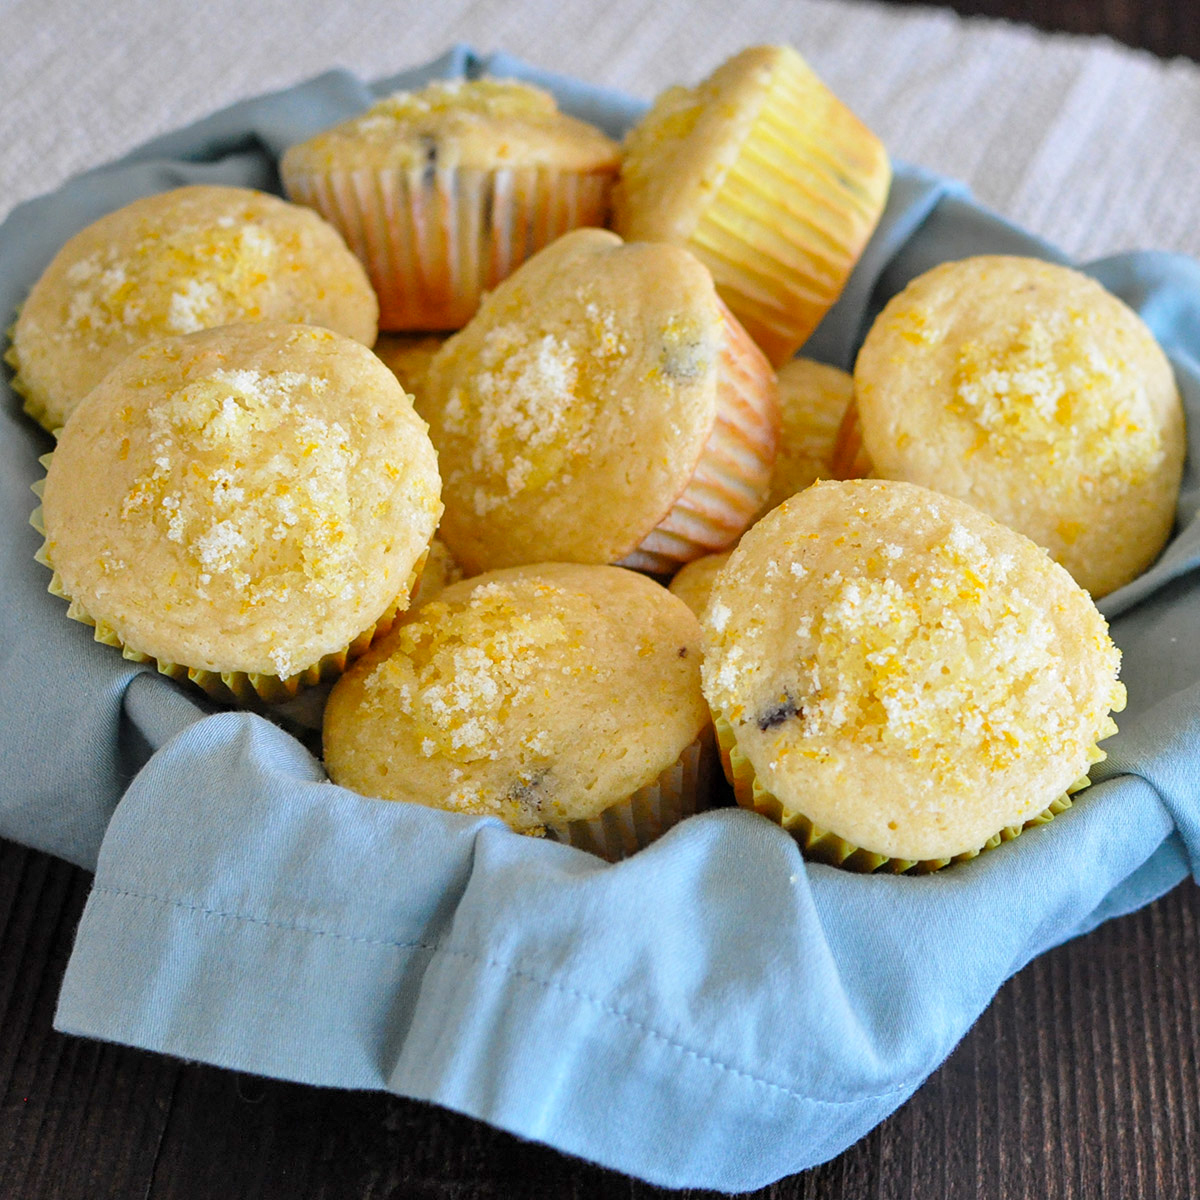 orange muffins in a basket lined with a blue napkin